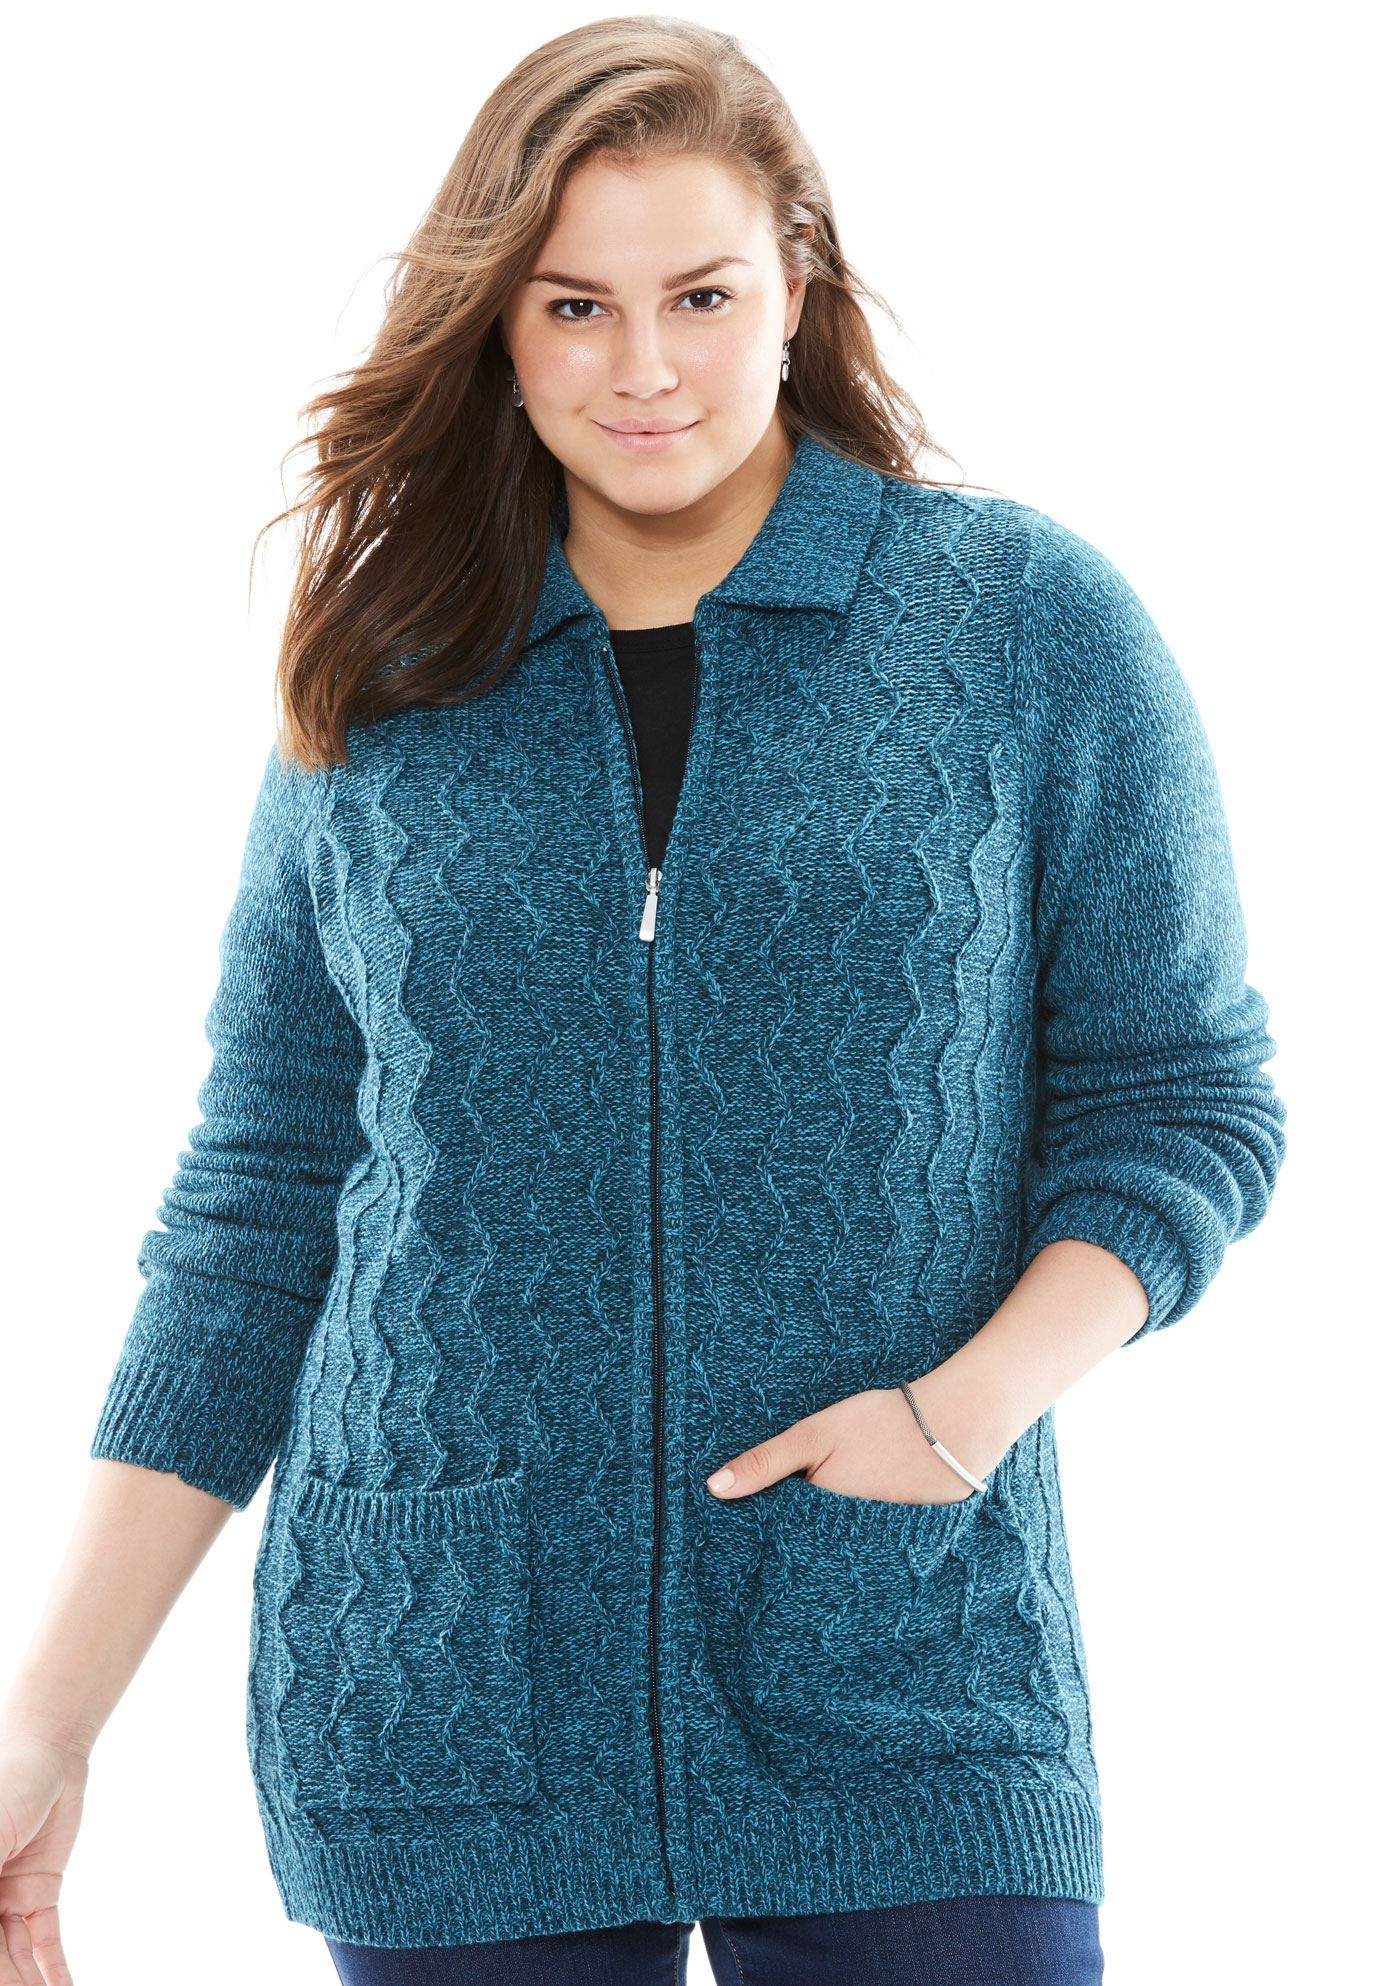 be7cf2eac Marled zip front cable knit cardigan - Women s Plus Size Clothing ...